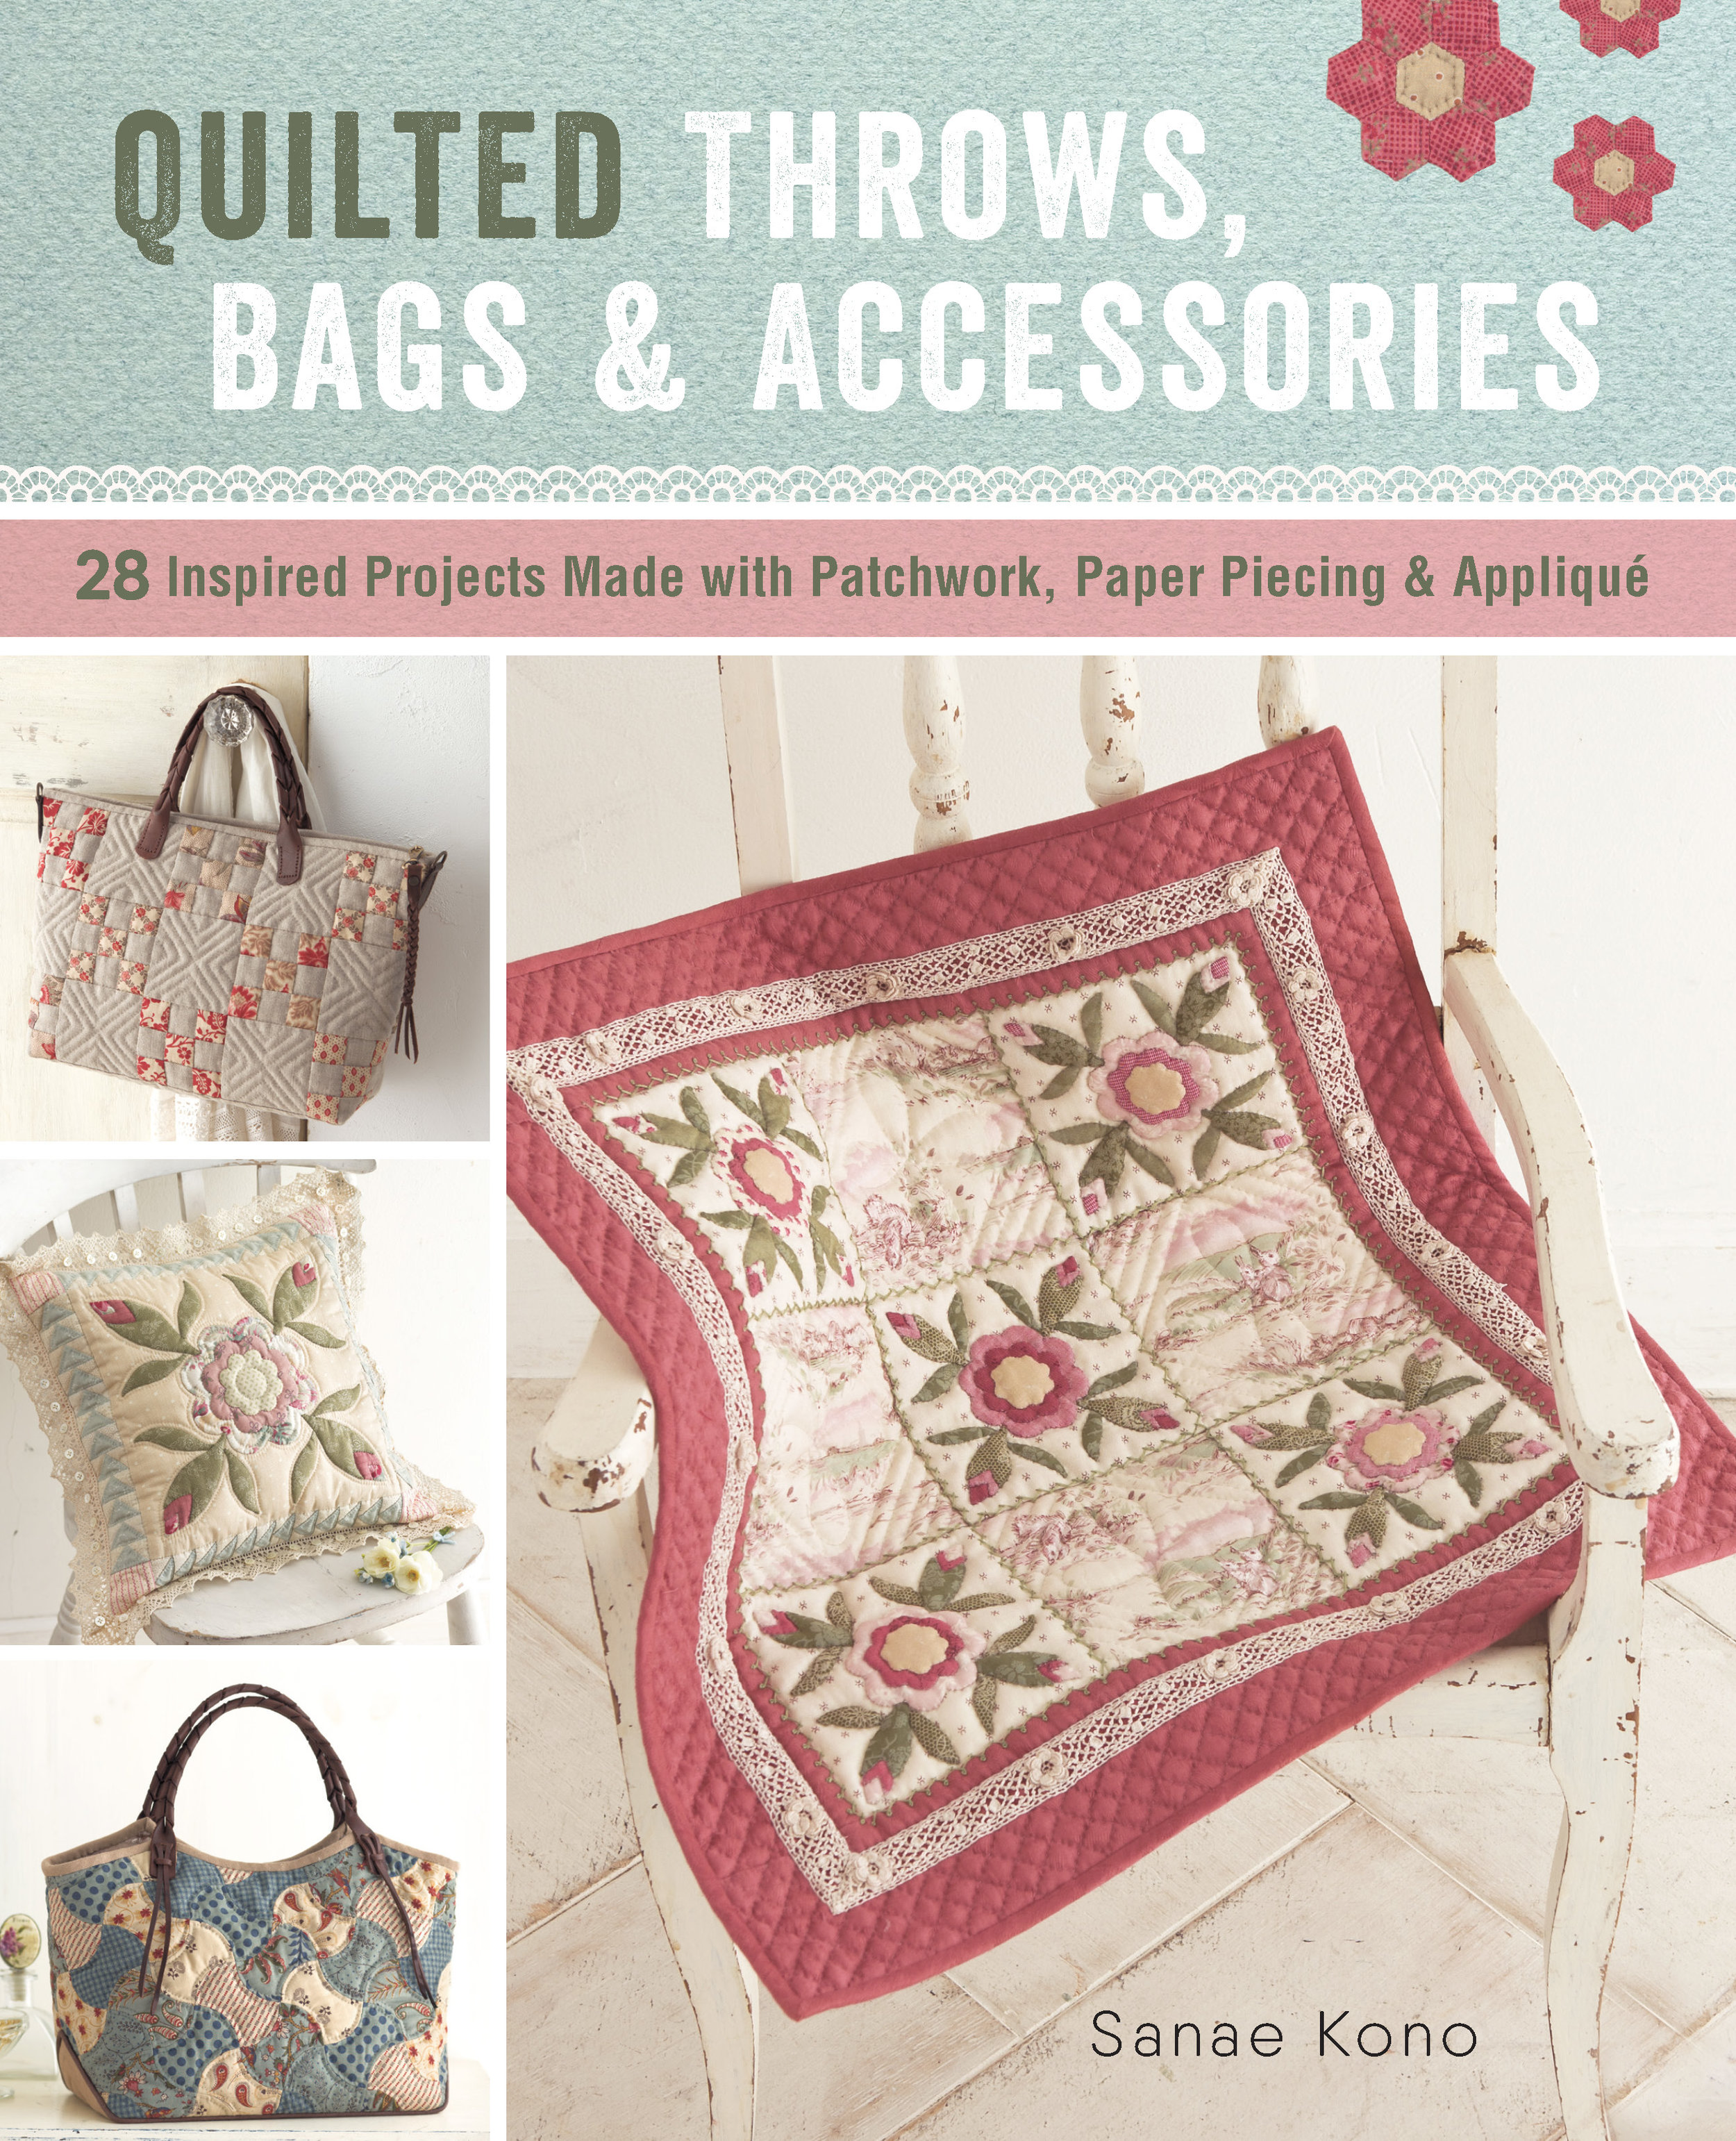 Quilted Throws, Bags, & Accessories Front Cover.jpg